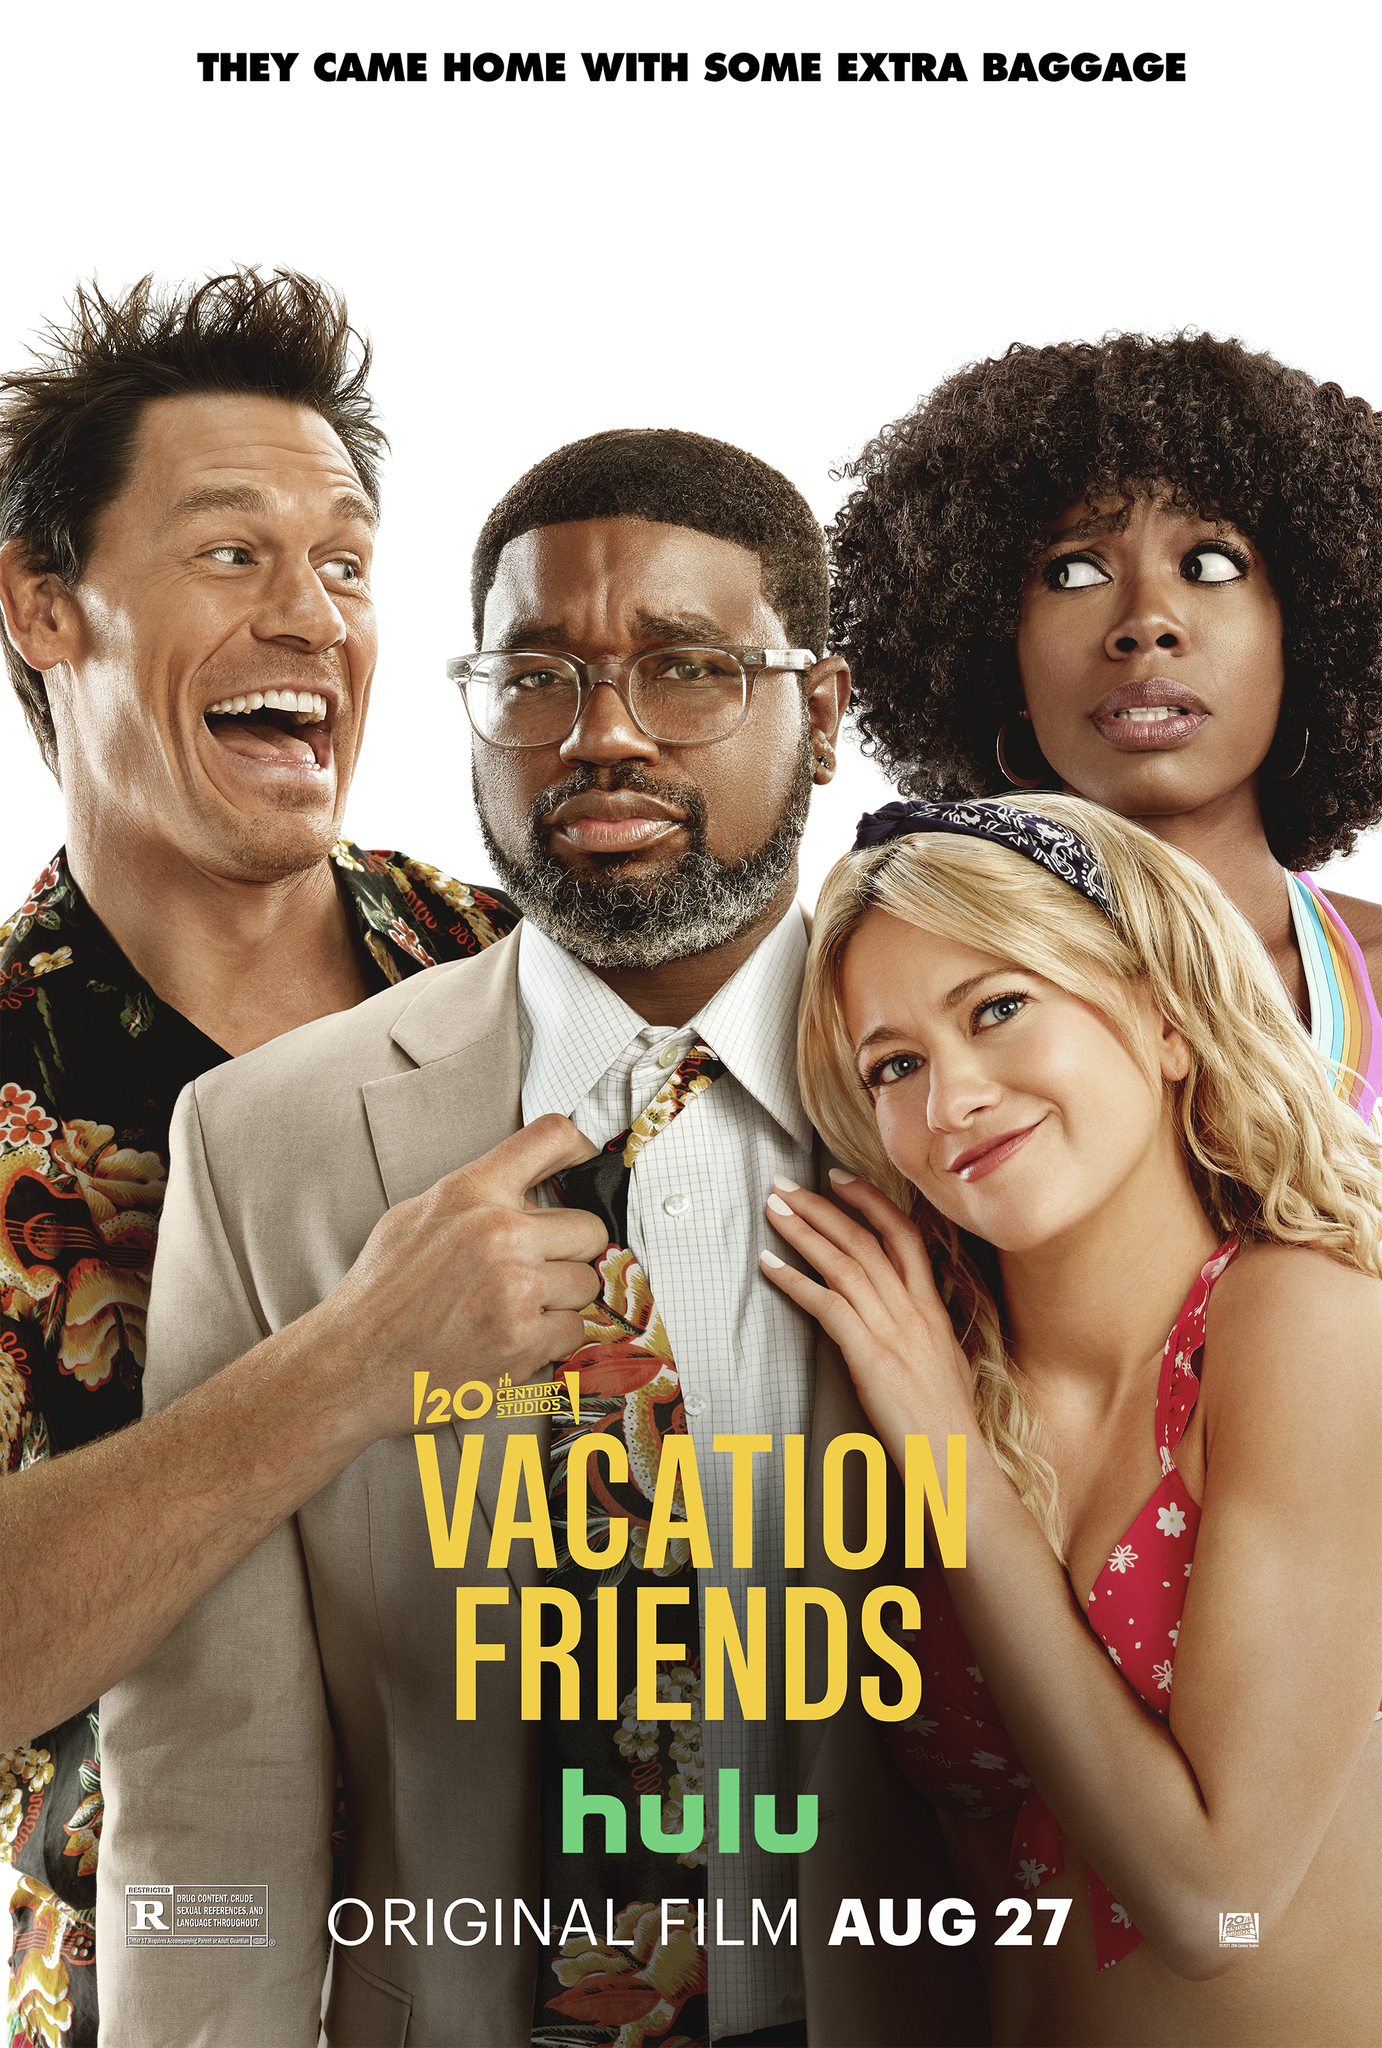 First Look Poster and Red Band Trailer for 'Vacation Friends' - Image 6